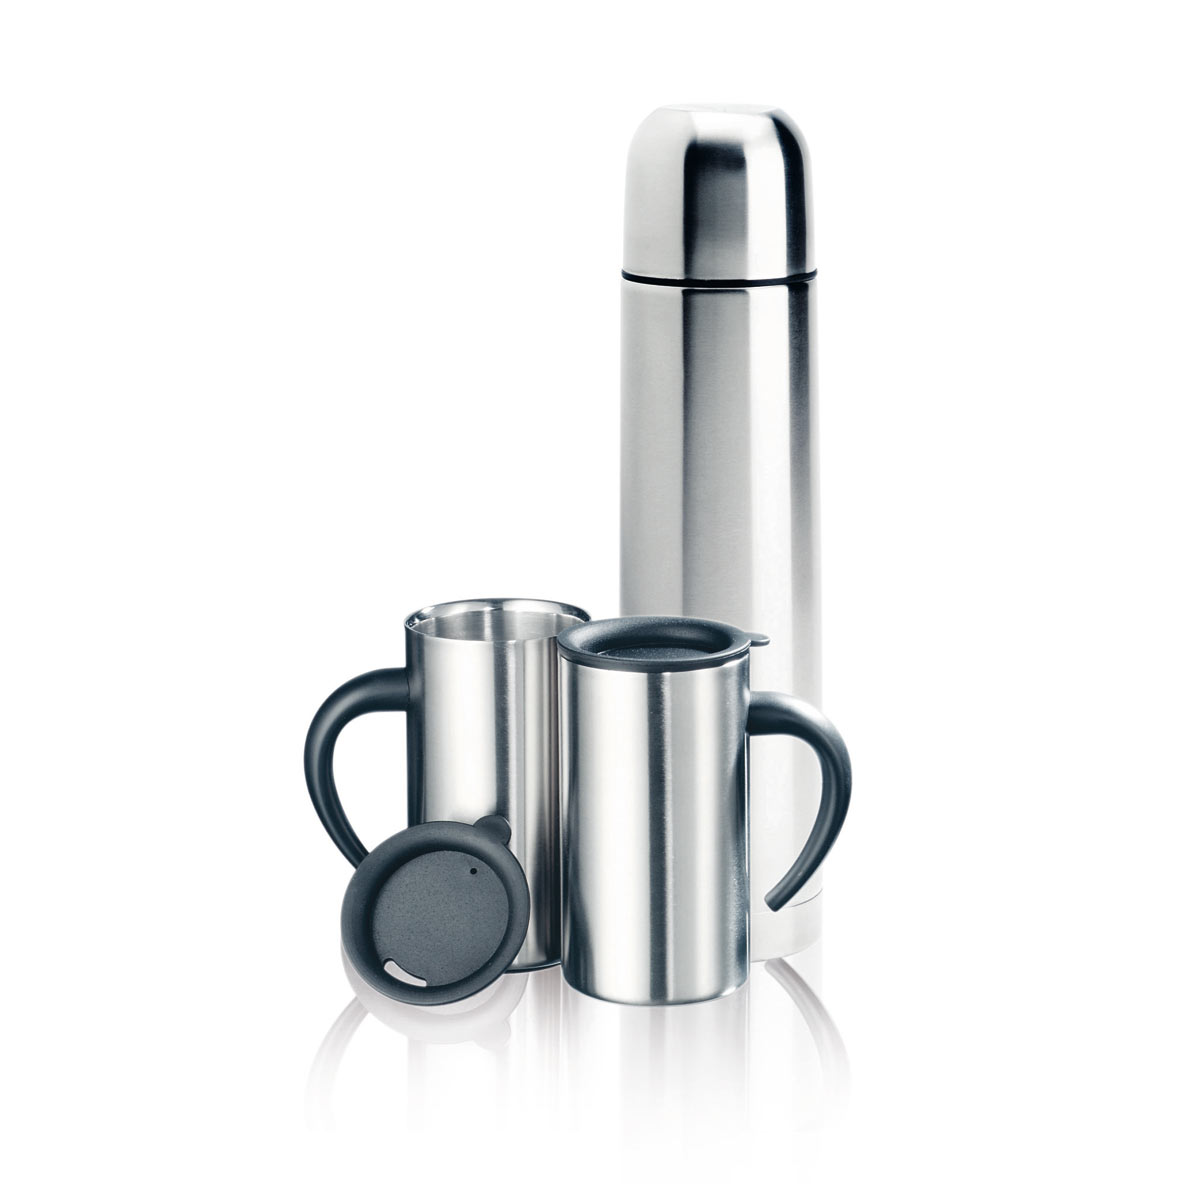 coffret bouteille thermos publicitaire mug isotherme bouteille publicitaire mug inox. Black Bedroom Furniture Sets. Home Design Ideas